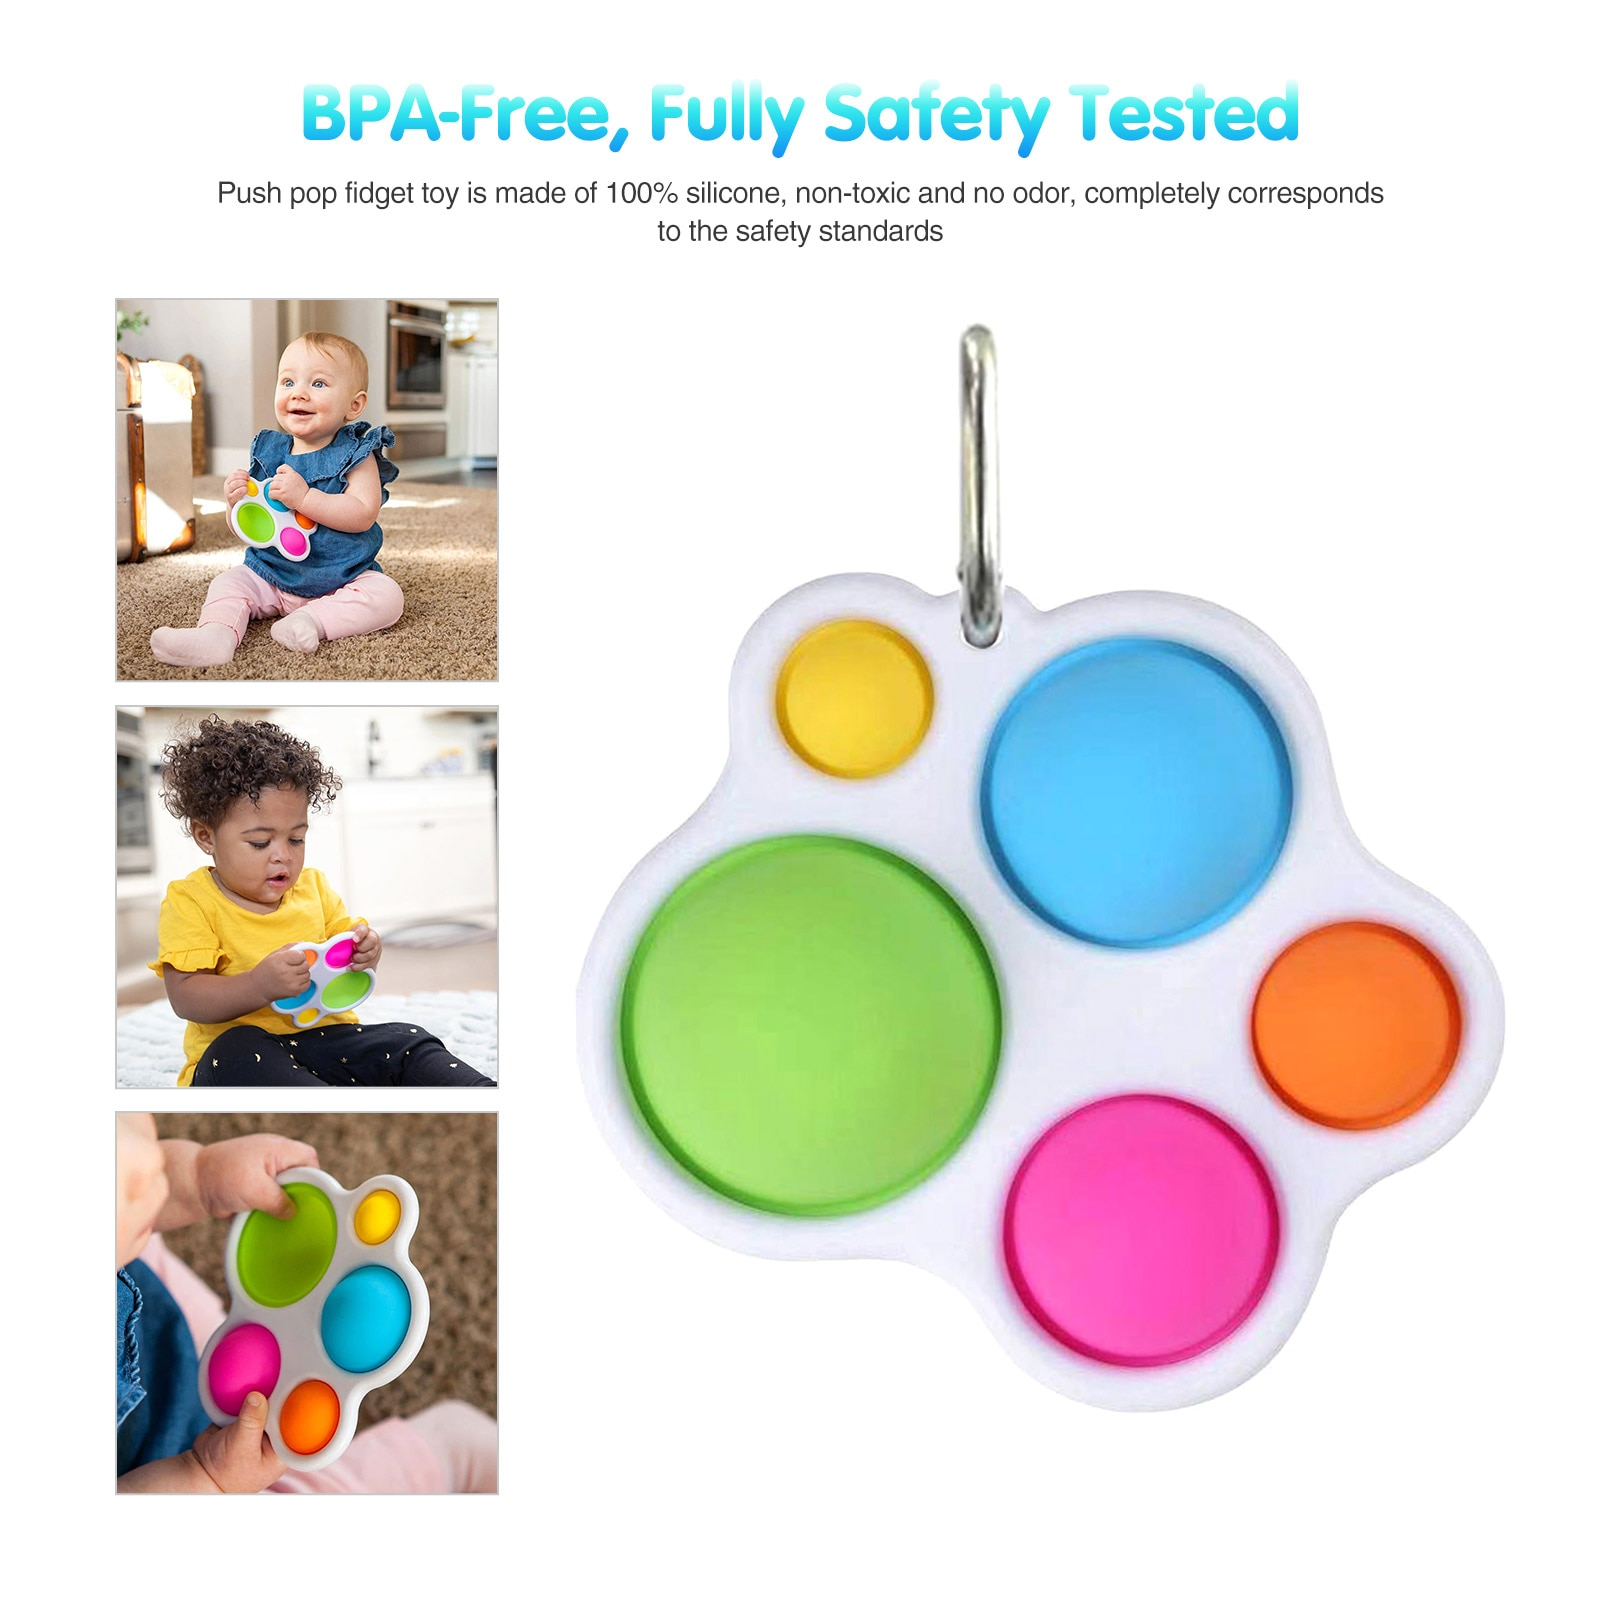 23PCS Fidget Sensory Toy Set Stress Relief Antistress Relief Autism Anxiety Decompression Toy For Kids Adult Sress Reliver Toys enlarge